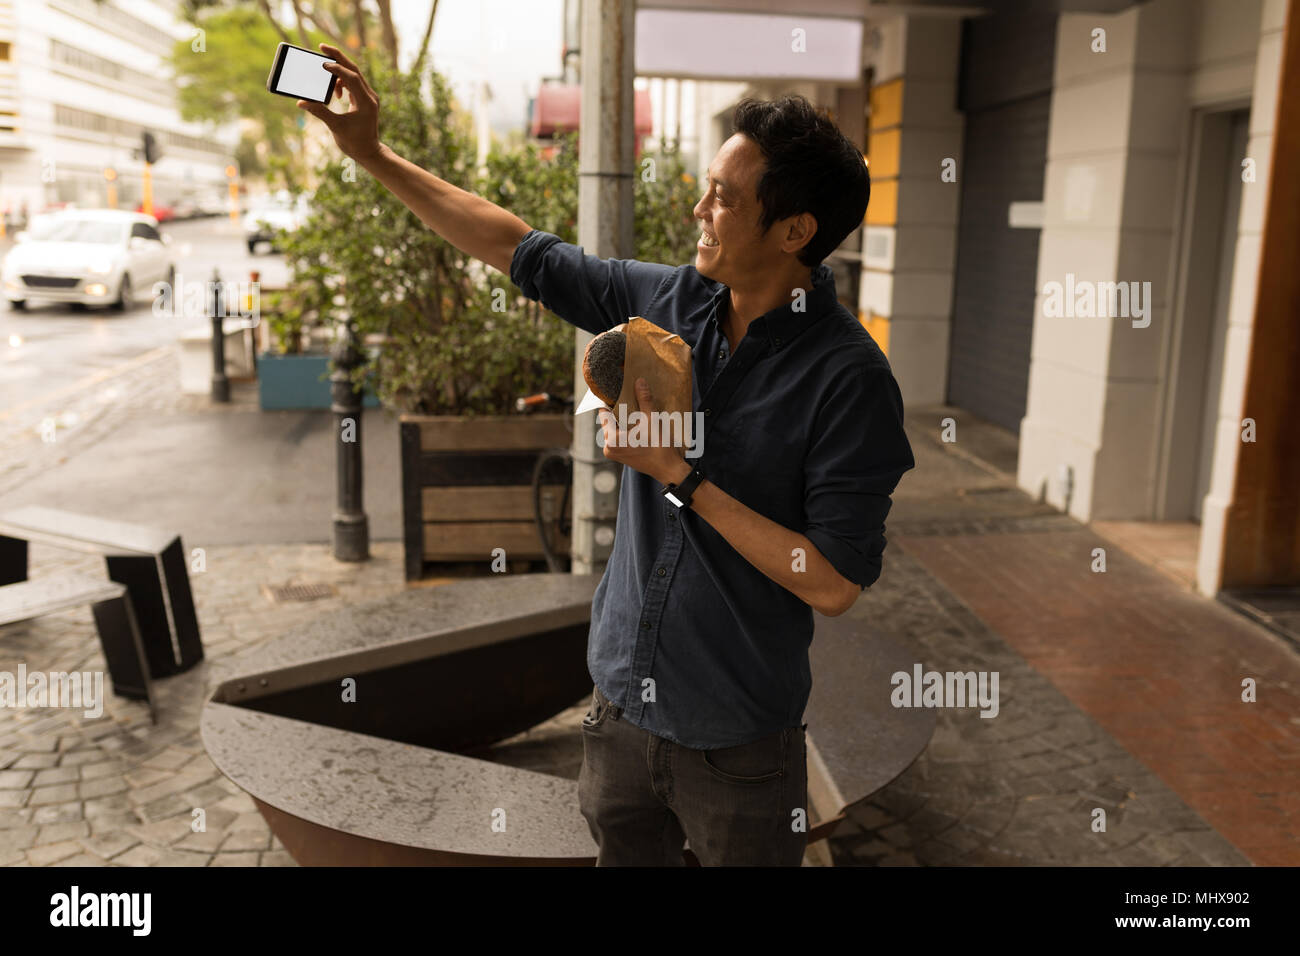 Businessman taking with mobile phone selfies Photo Stock